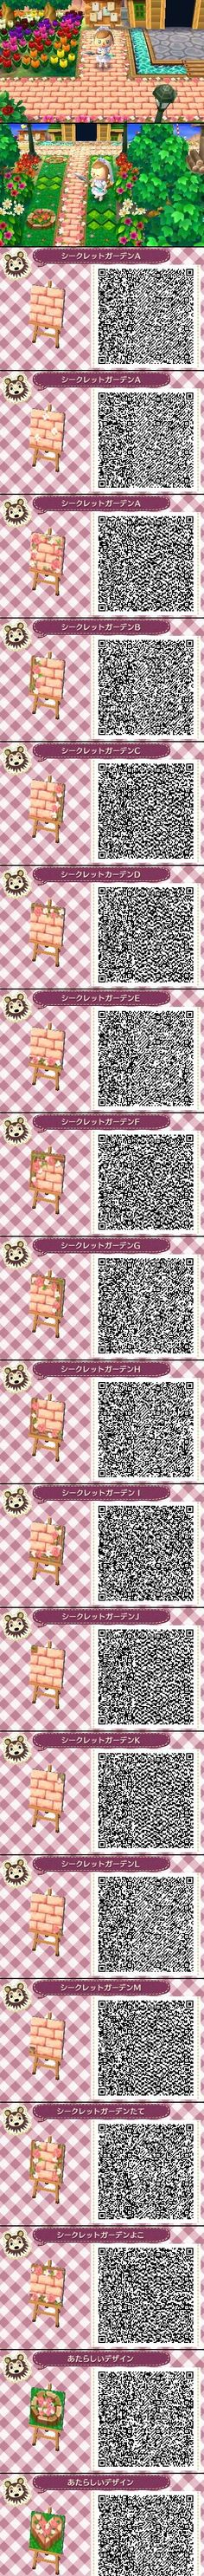 Animal Crossing: New Leaf - pink stone path QR-code: